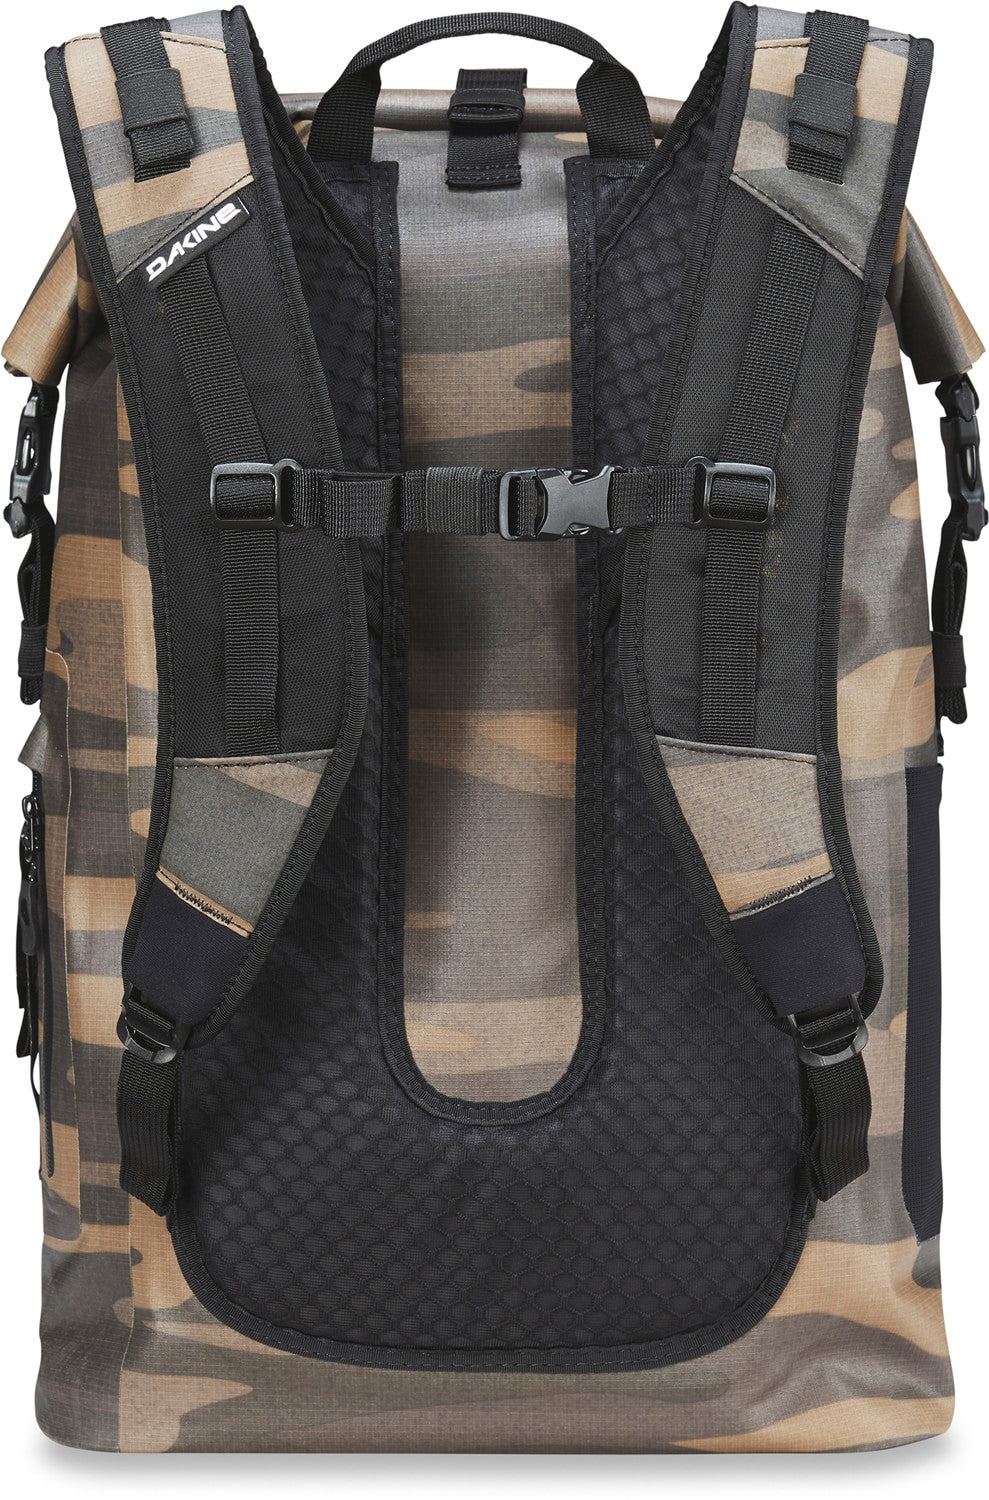 Dakine Cyclone II Dry Pack 36L Backpack - Camo - Surf Station Store b16385a25ac0d